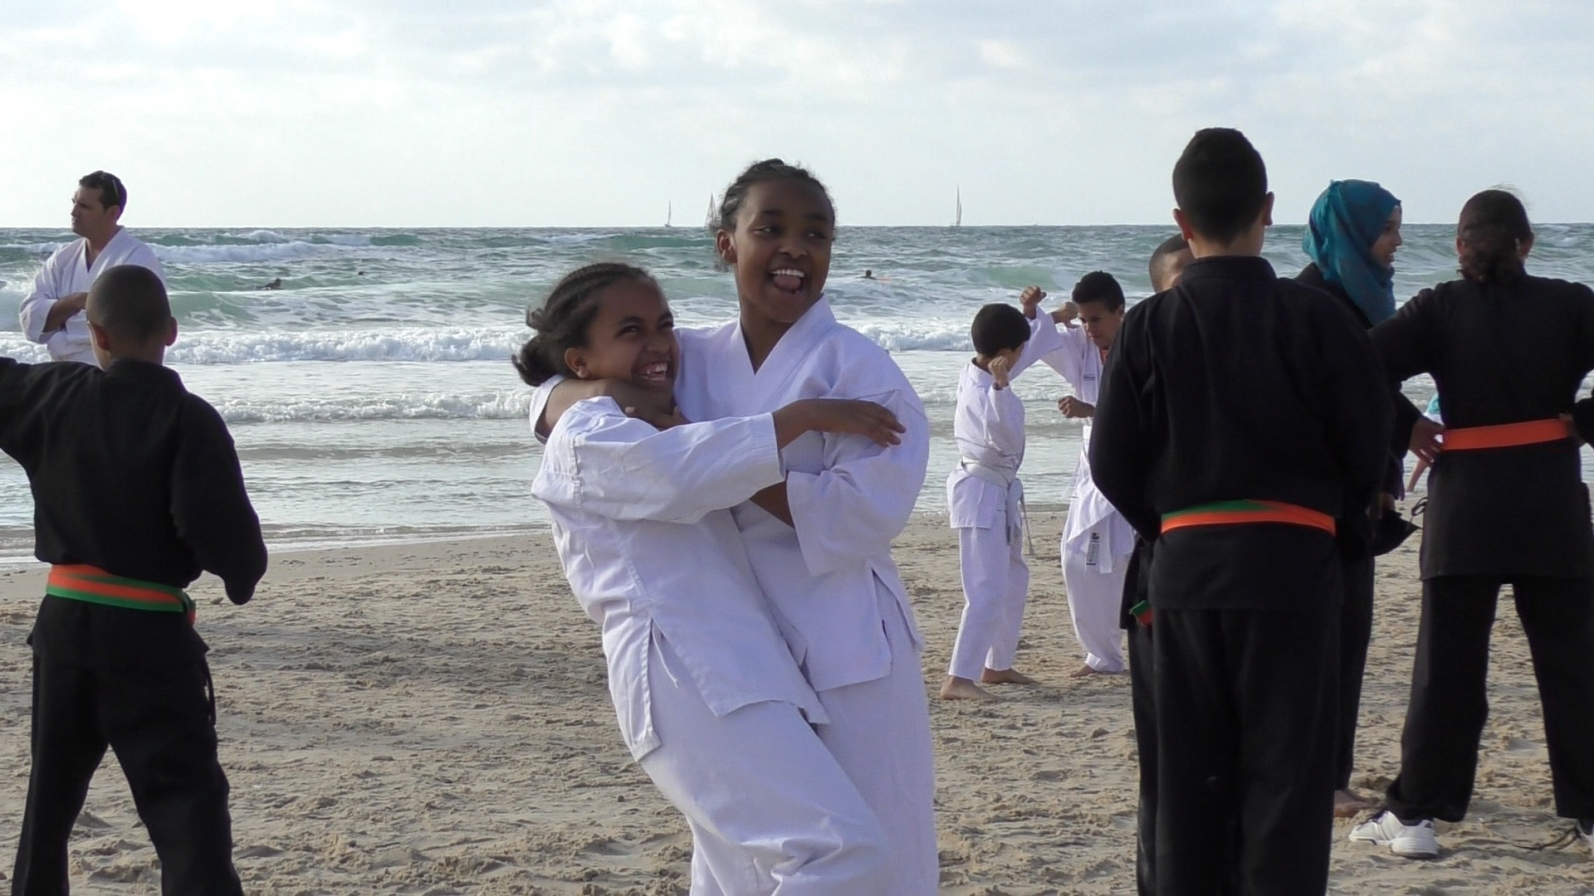 Learning martial arts together is fun. Photo courtesy of Budo for Peace